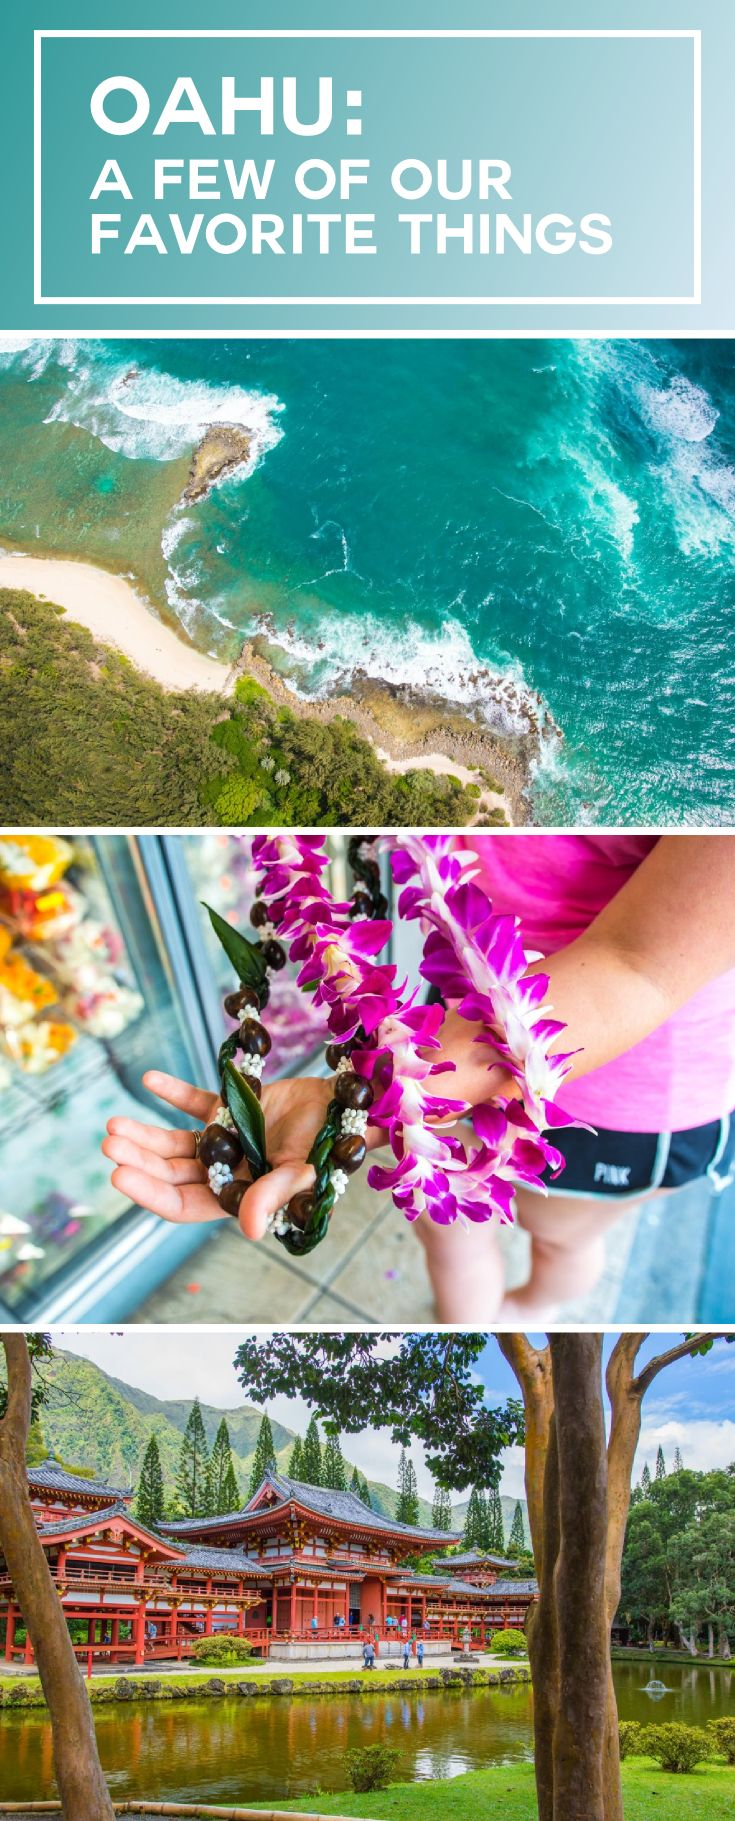 Oahu: A Few of Our Favorite Things